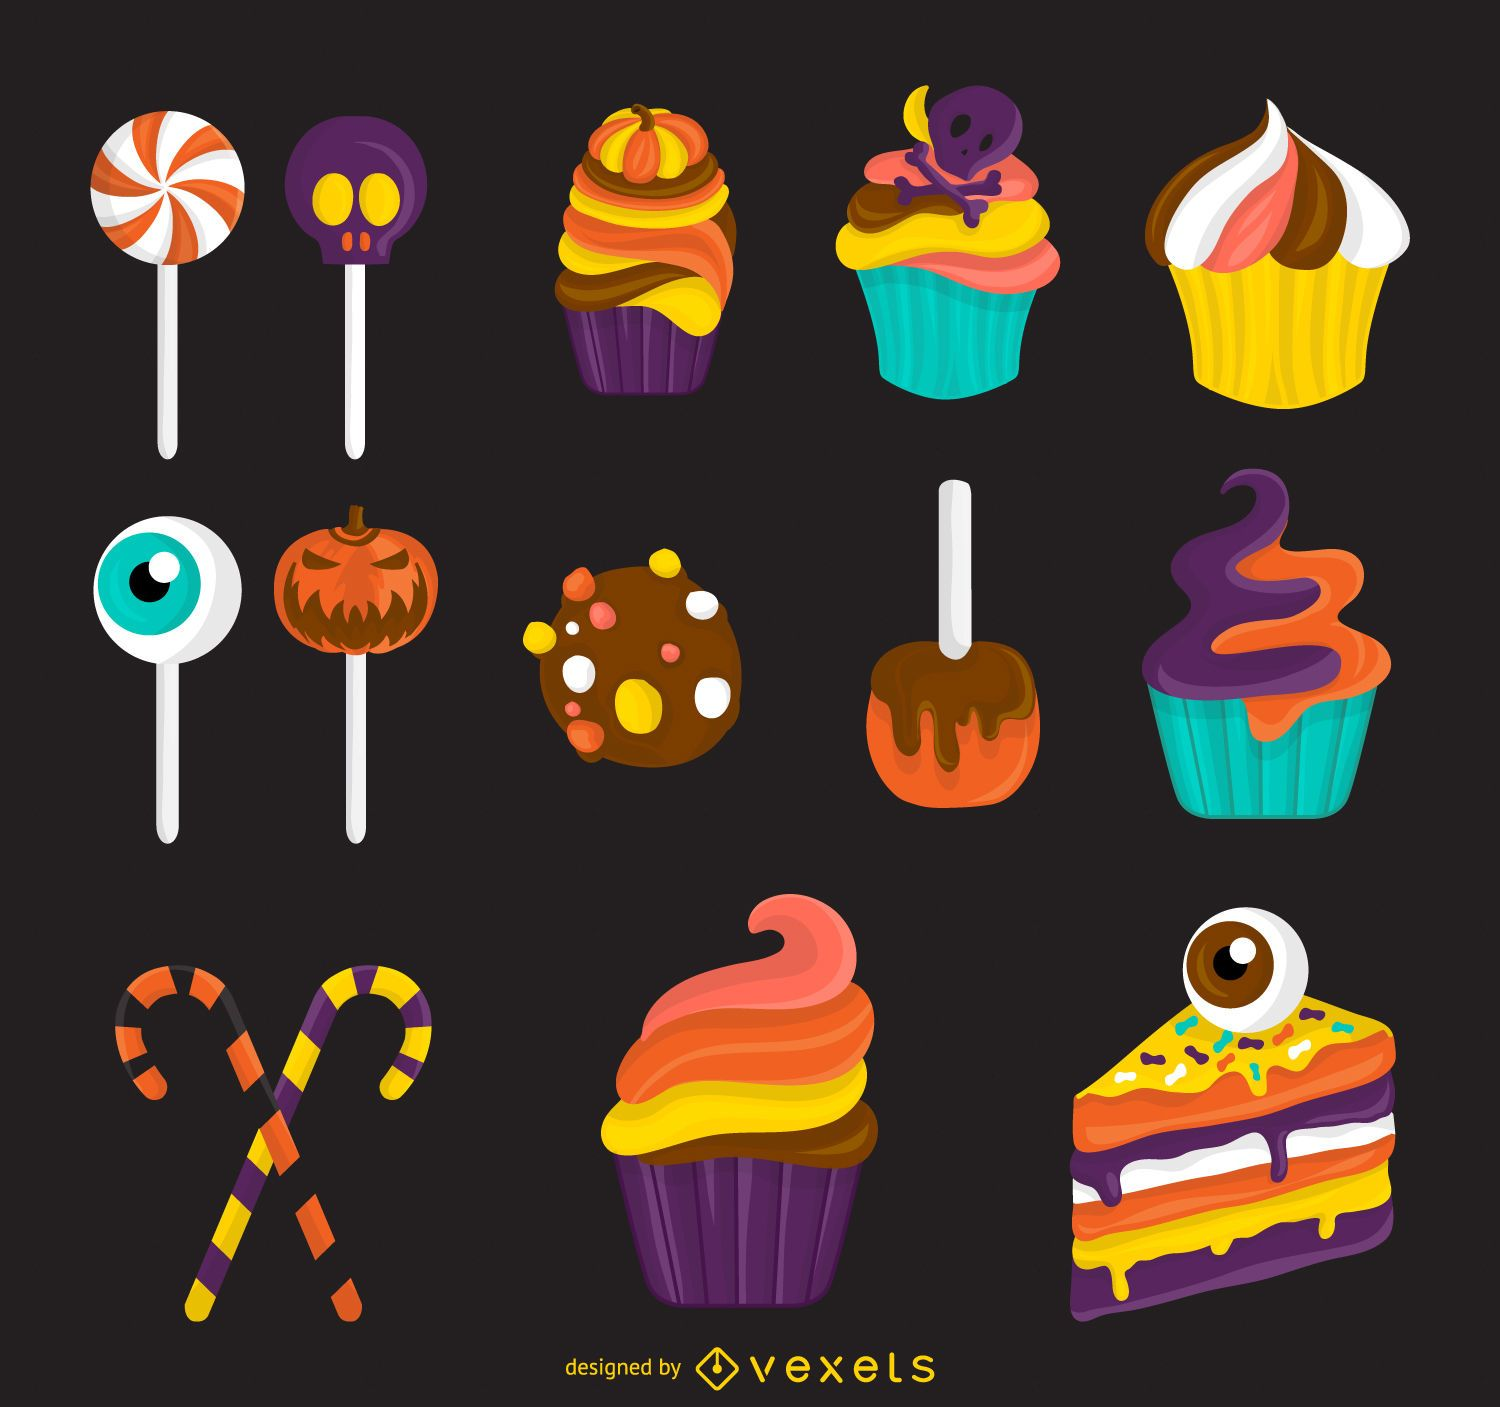 halloween candy treats illustration download large image 1500x1407px license image user